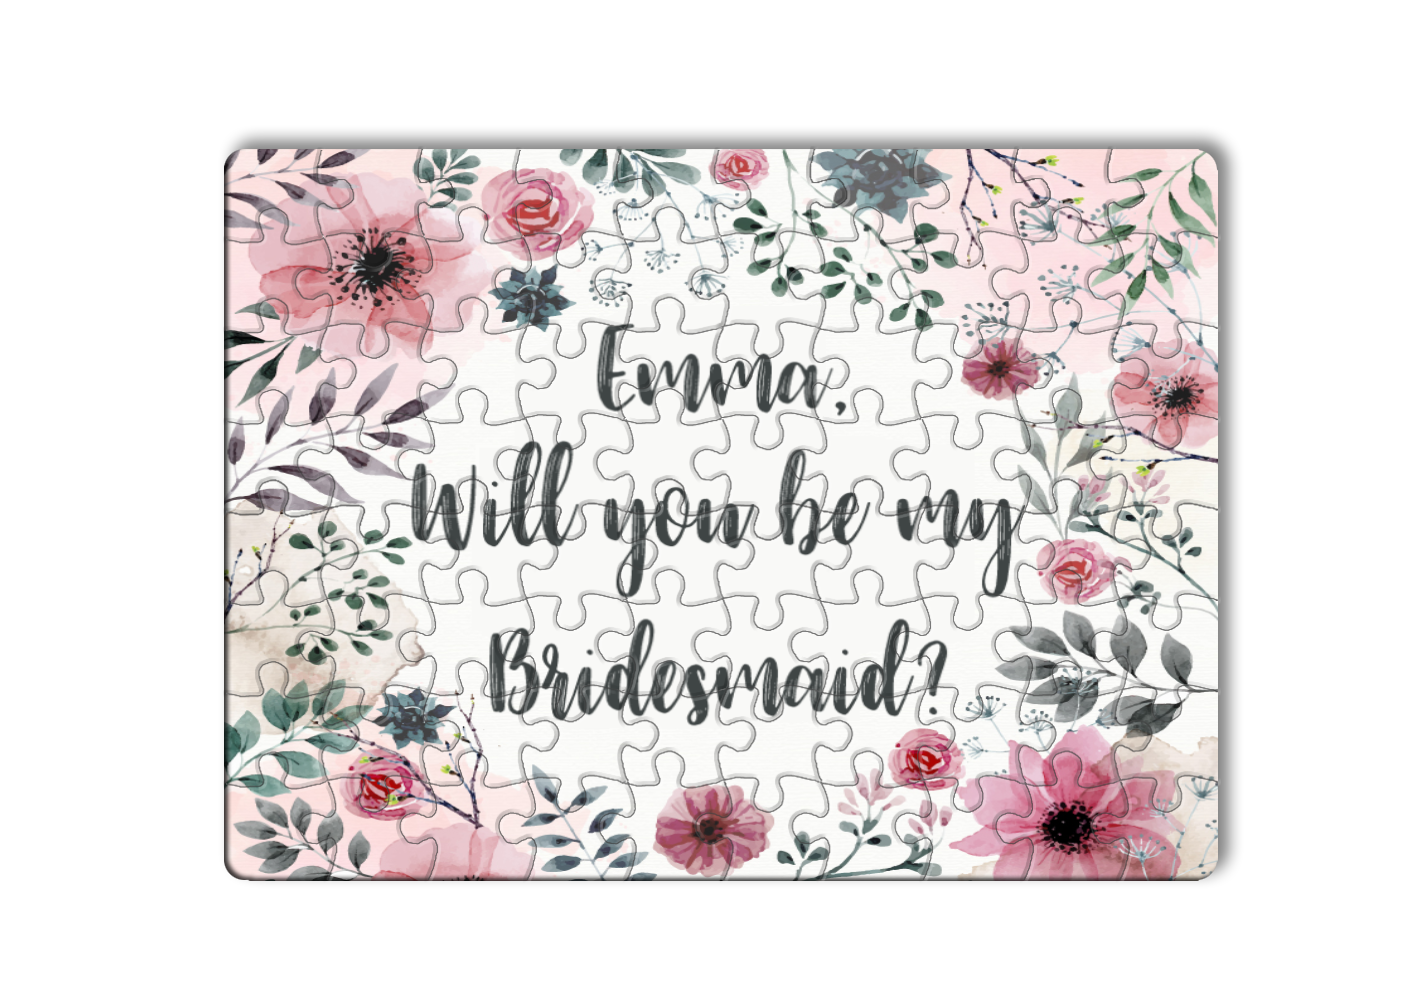 New products nearly every day Wedding Accessori... check it out http://nannygoatscloset.myshopify.com/products/will-you-be-my-bridesmaid-proposal-gift?utm_campaign=social_autopilot&utm_source=pin&utm_medium=pin